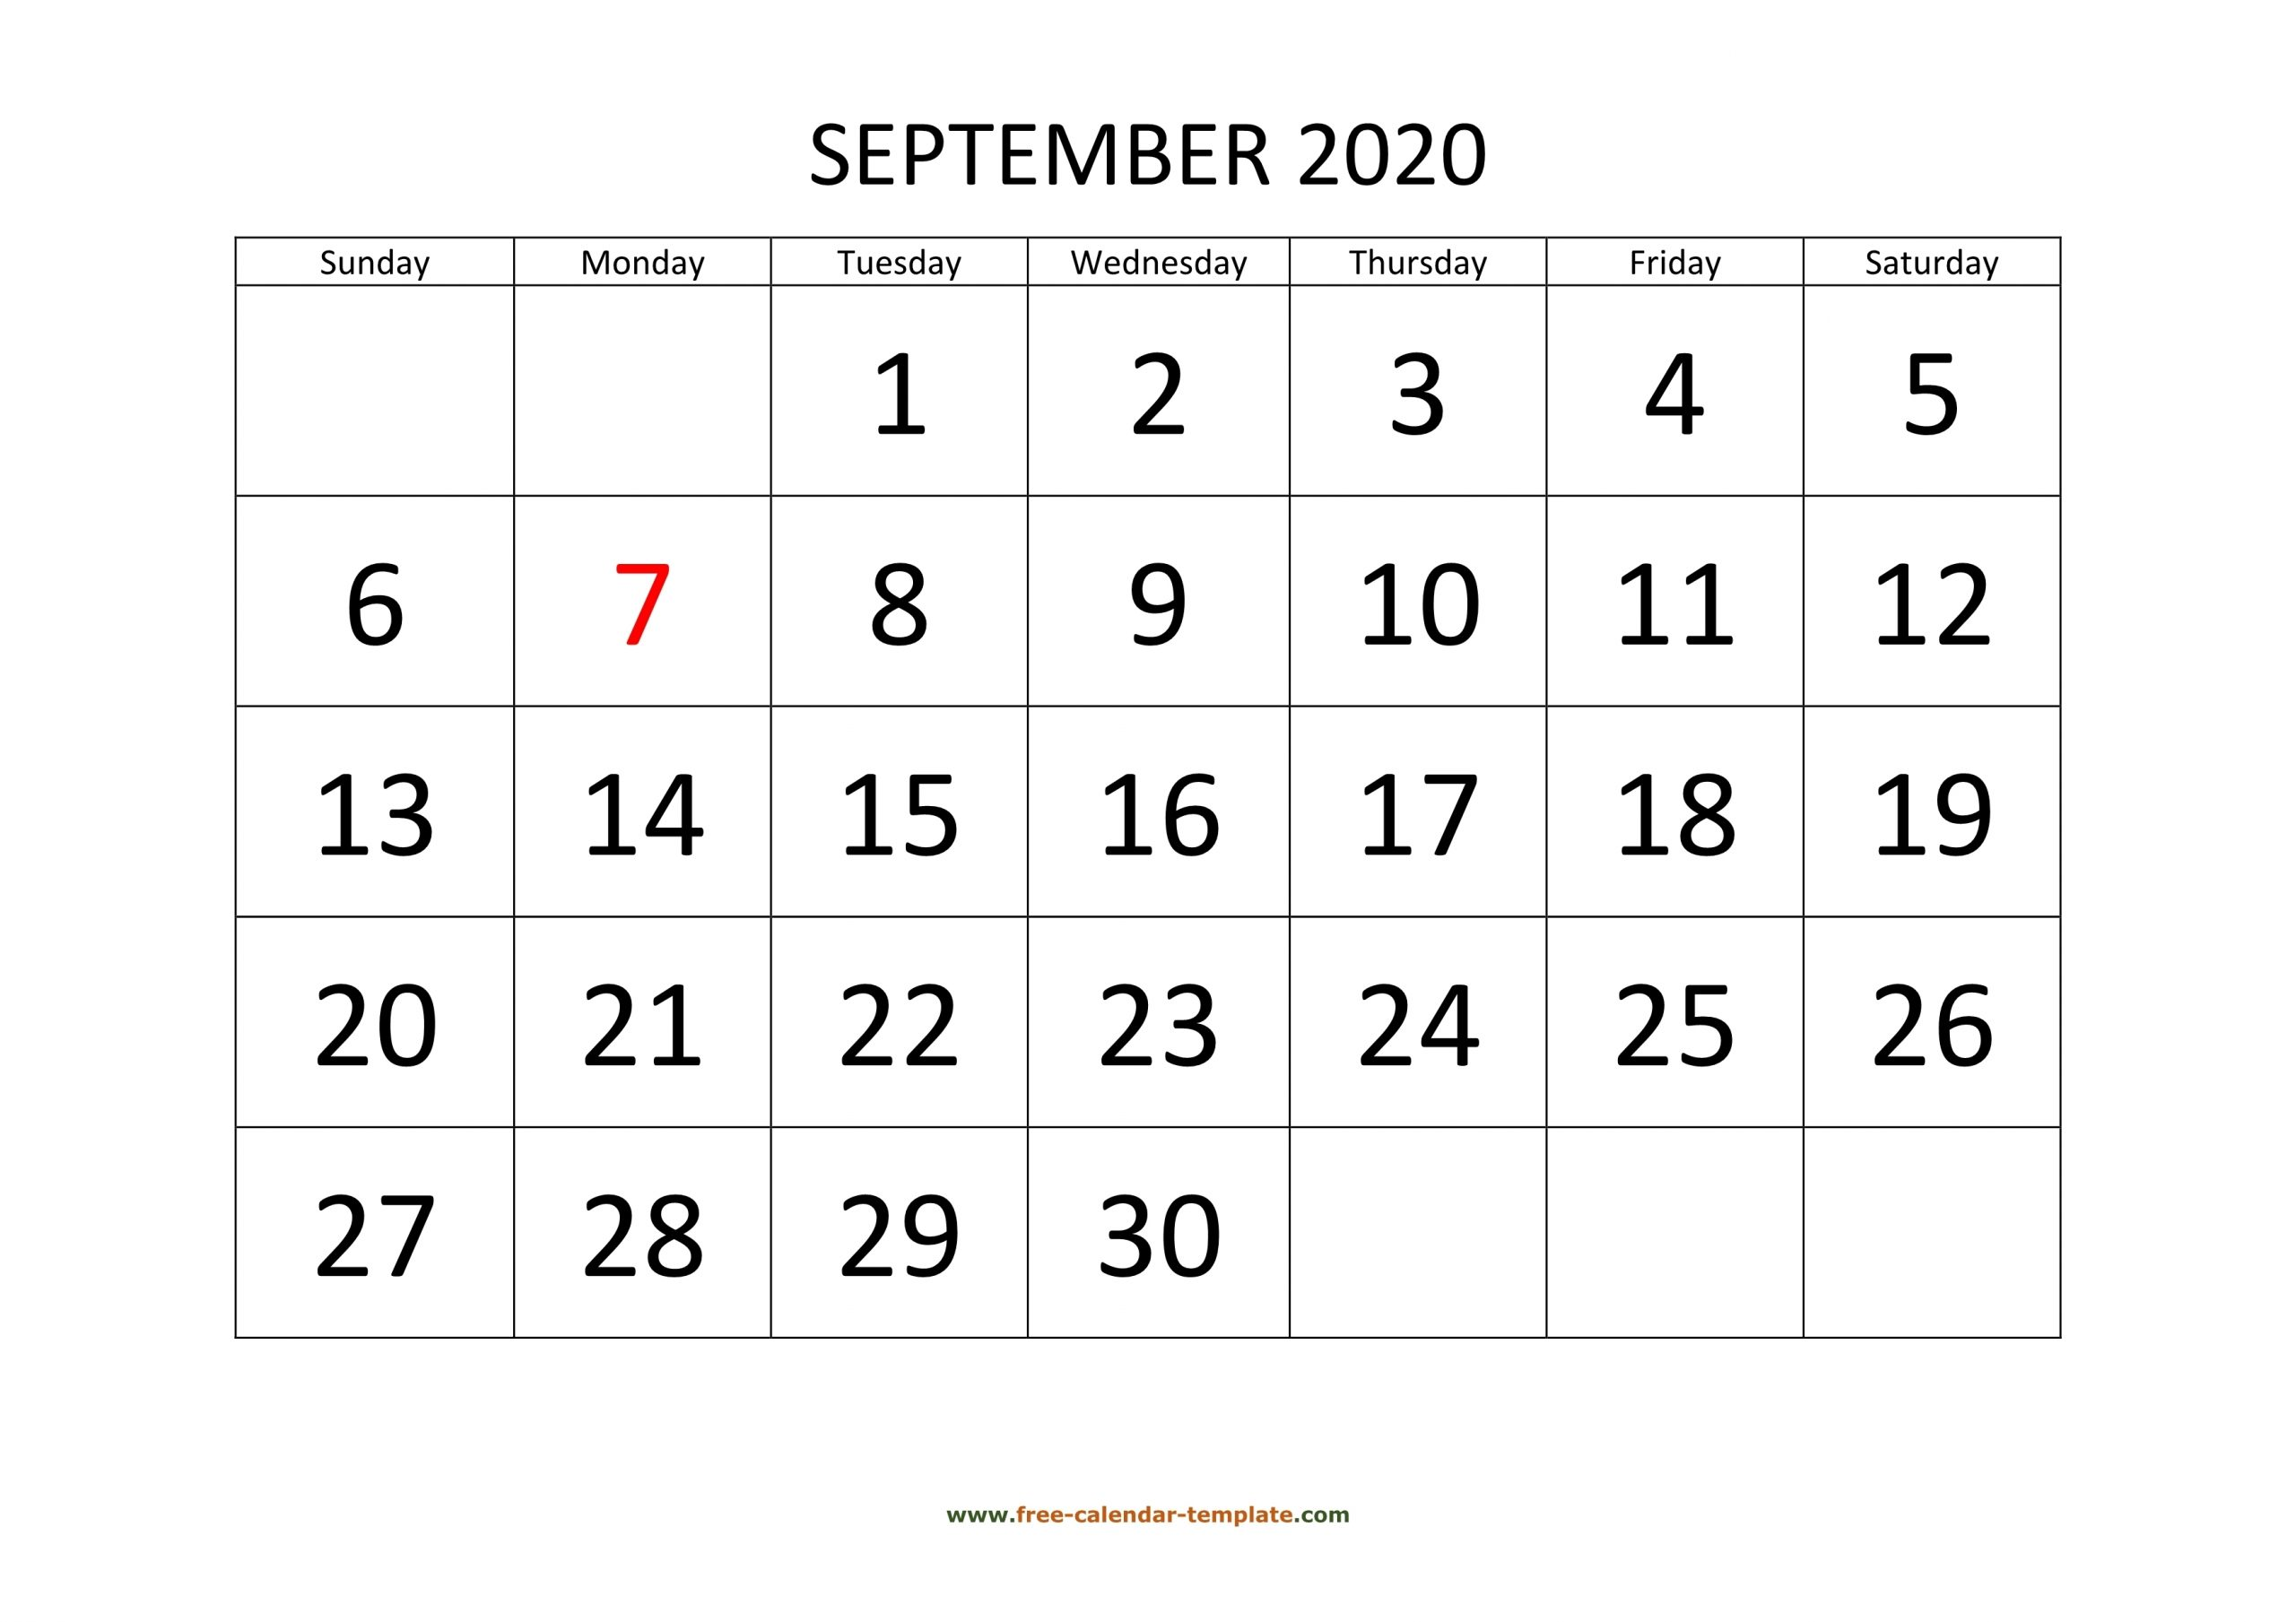 September 2020 Free Calendar Tempplate | Free-Calendar with Large Numbers Free Printable Calendar 2020